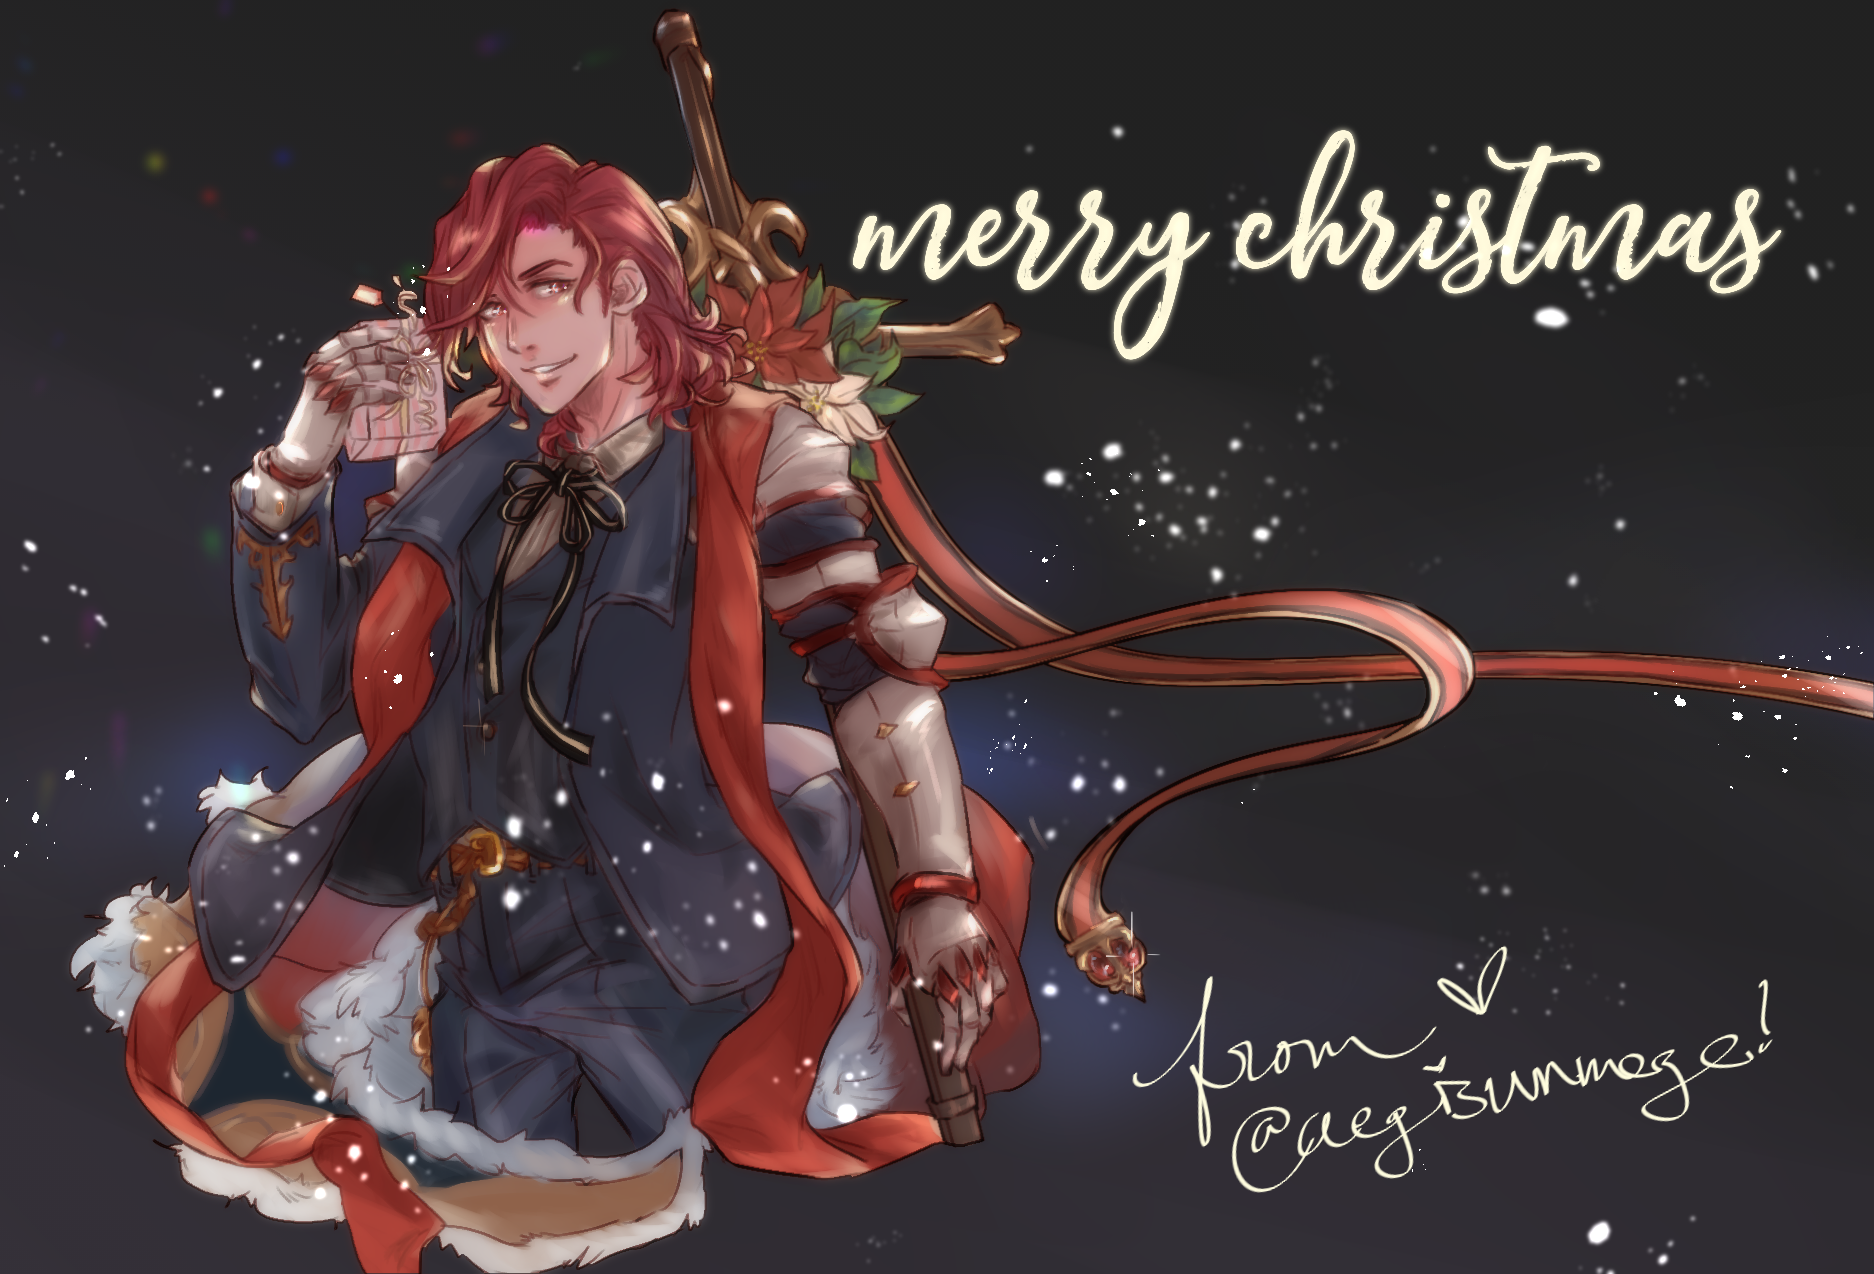 granblue fantasy 2018 secret santa gift exchange